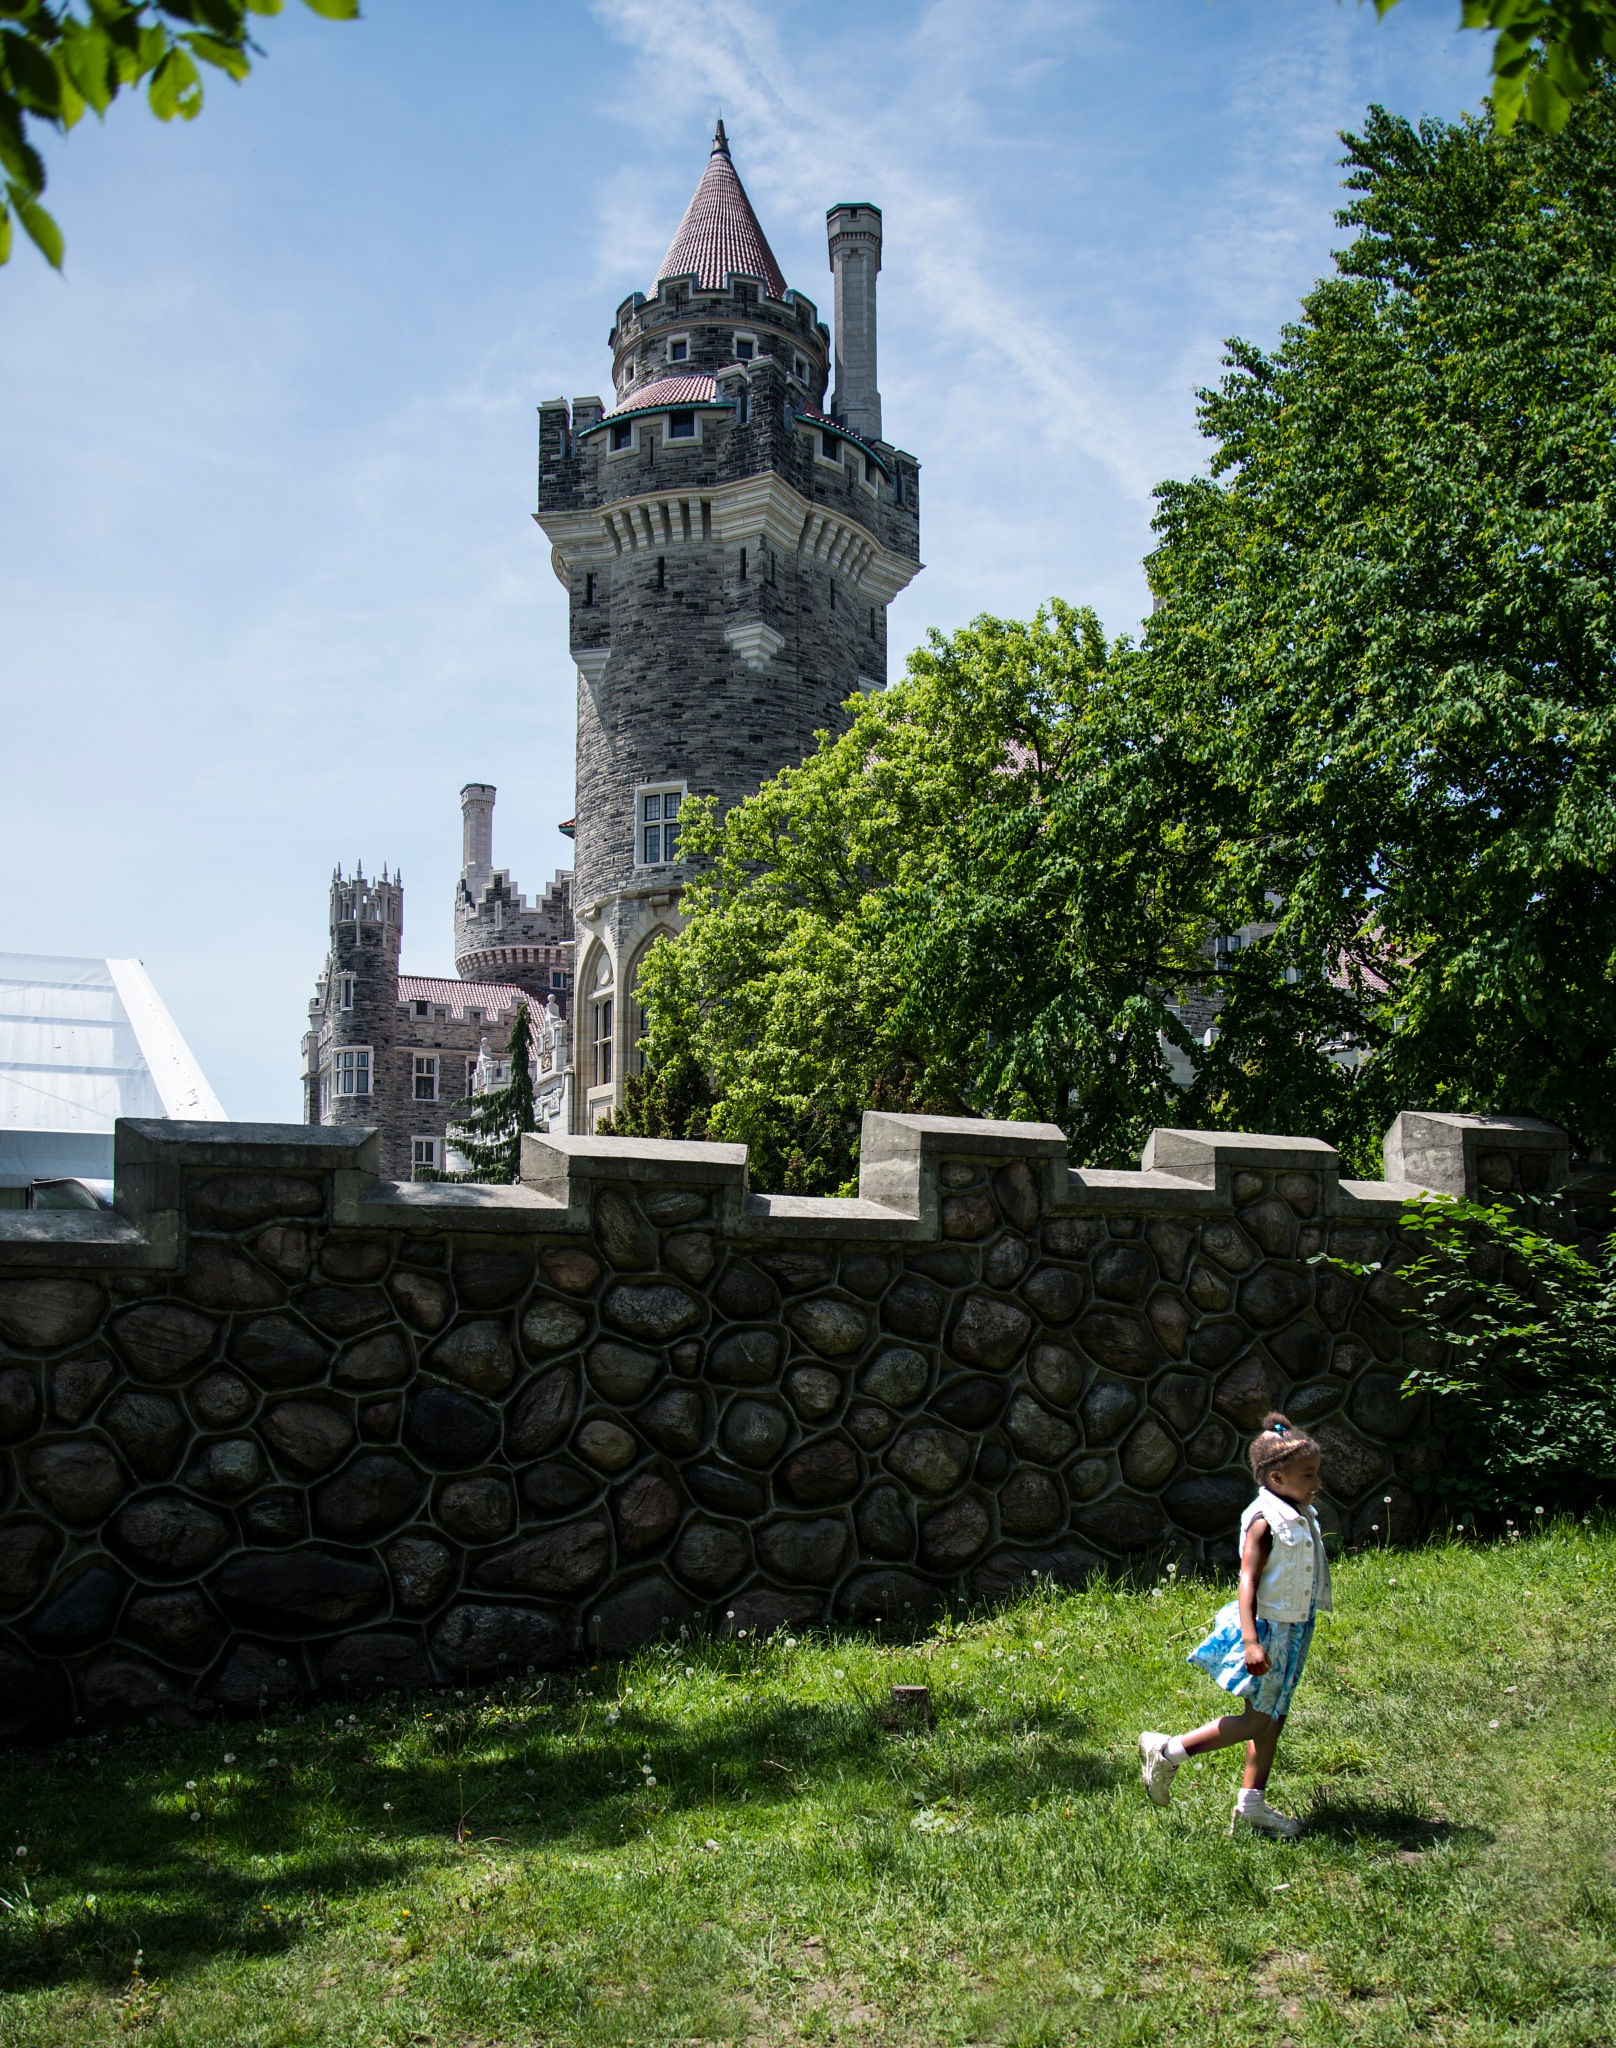 The Girl & The Castle by msfphotography